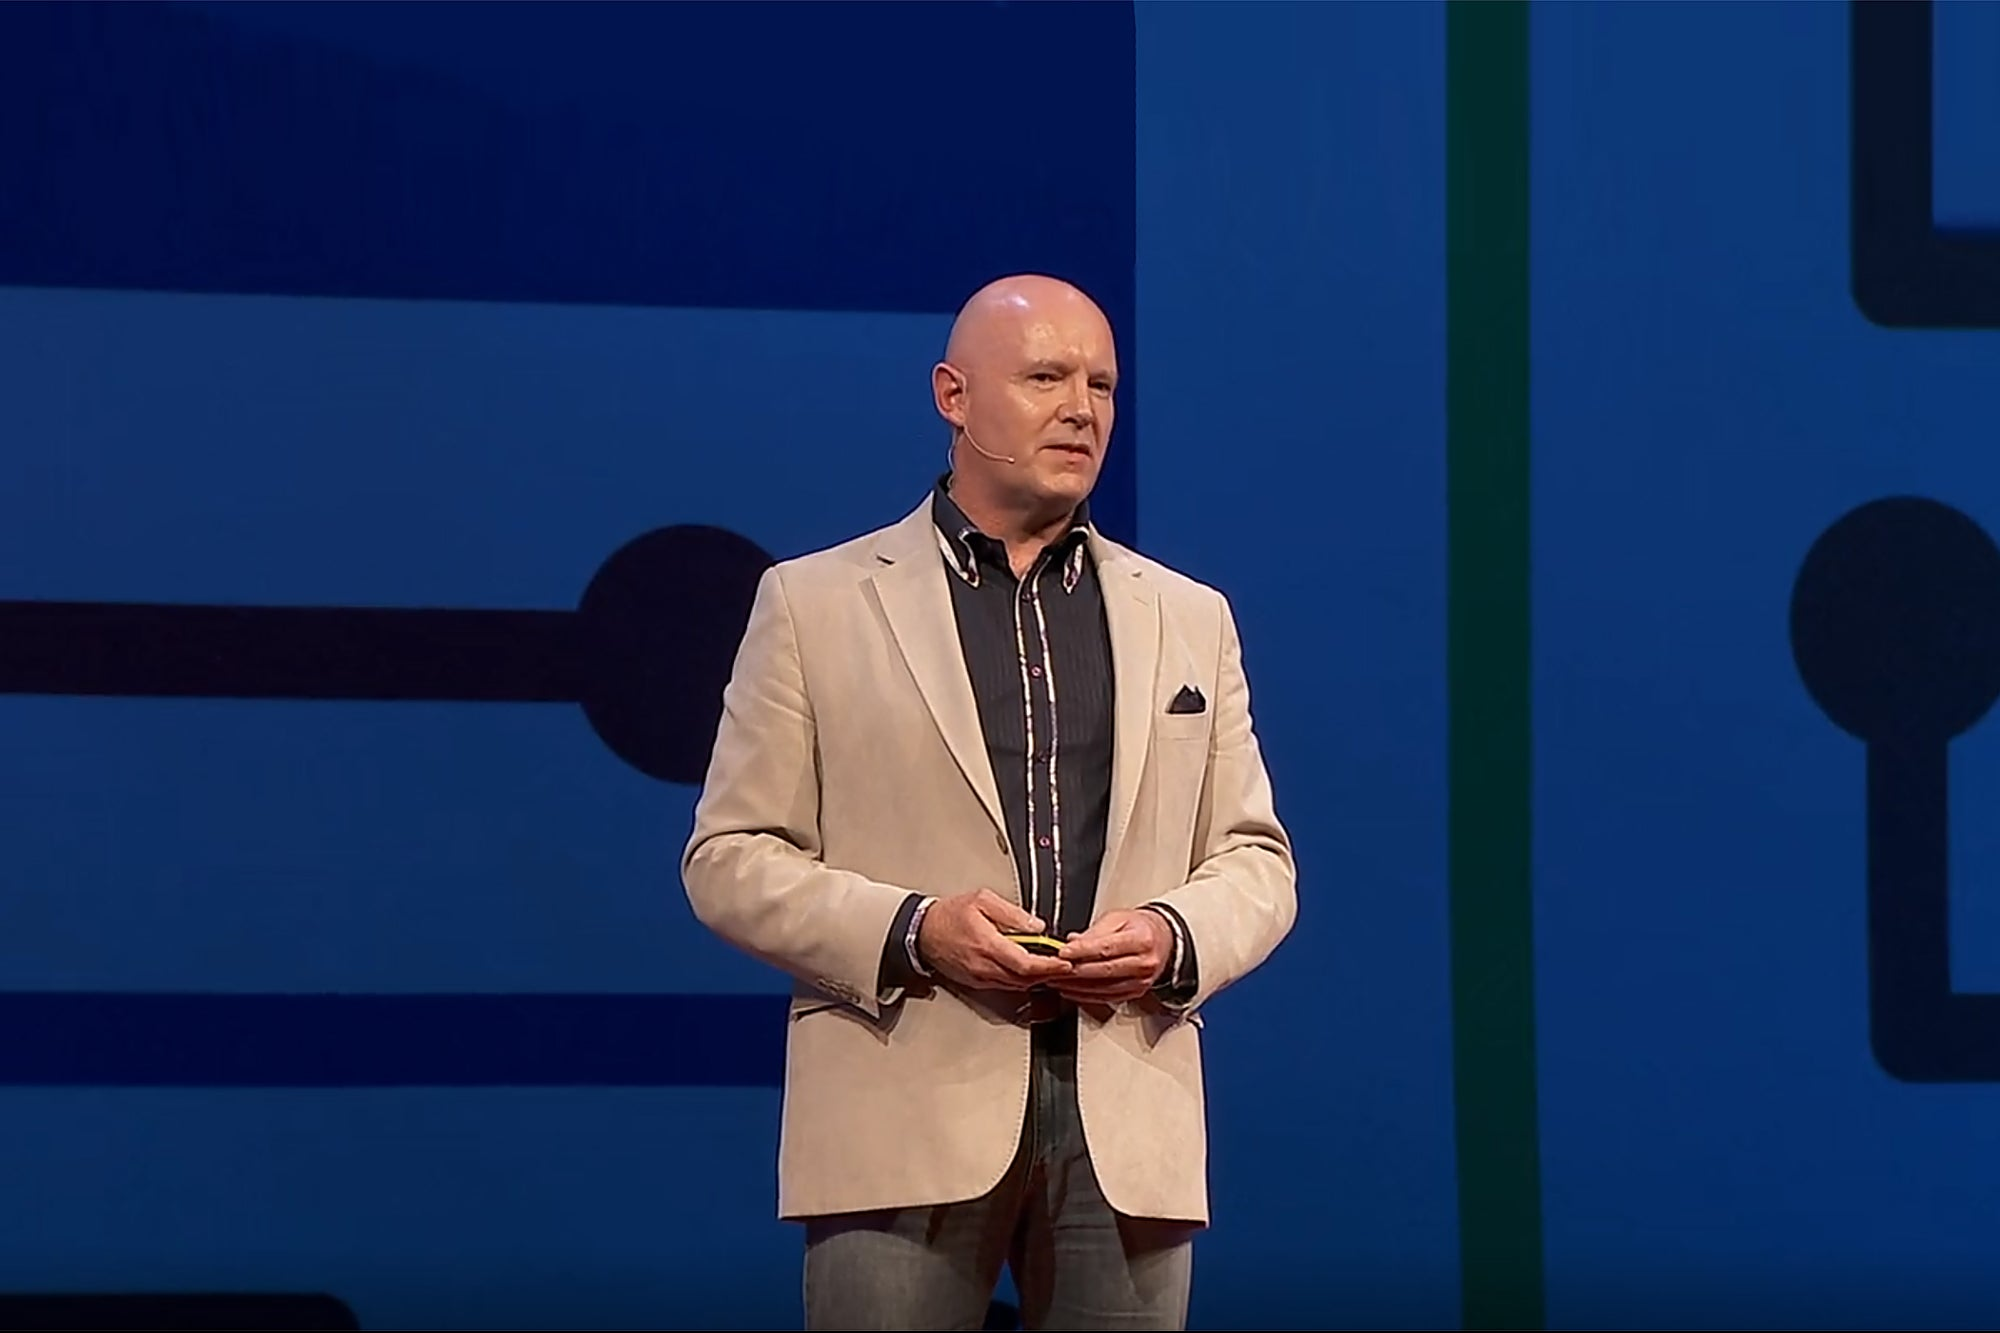 A Top TED Speaker On the Most Important Leadership Skill Right Now